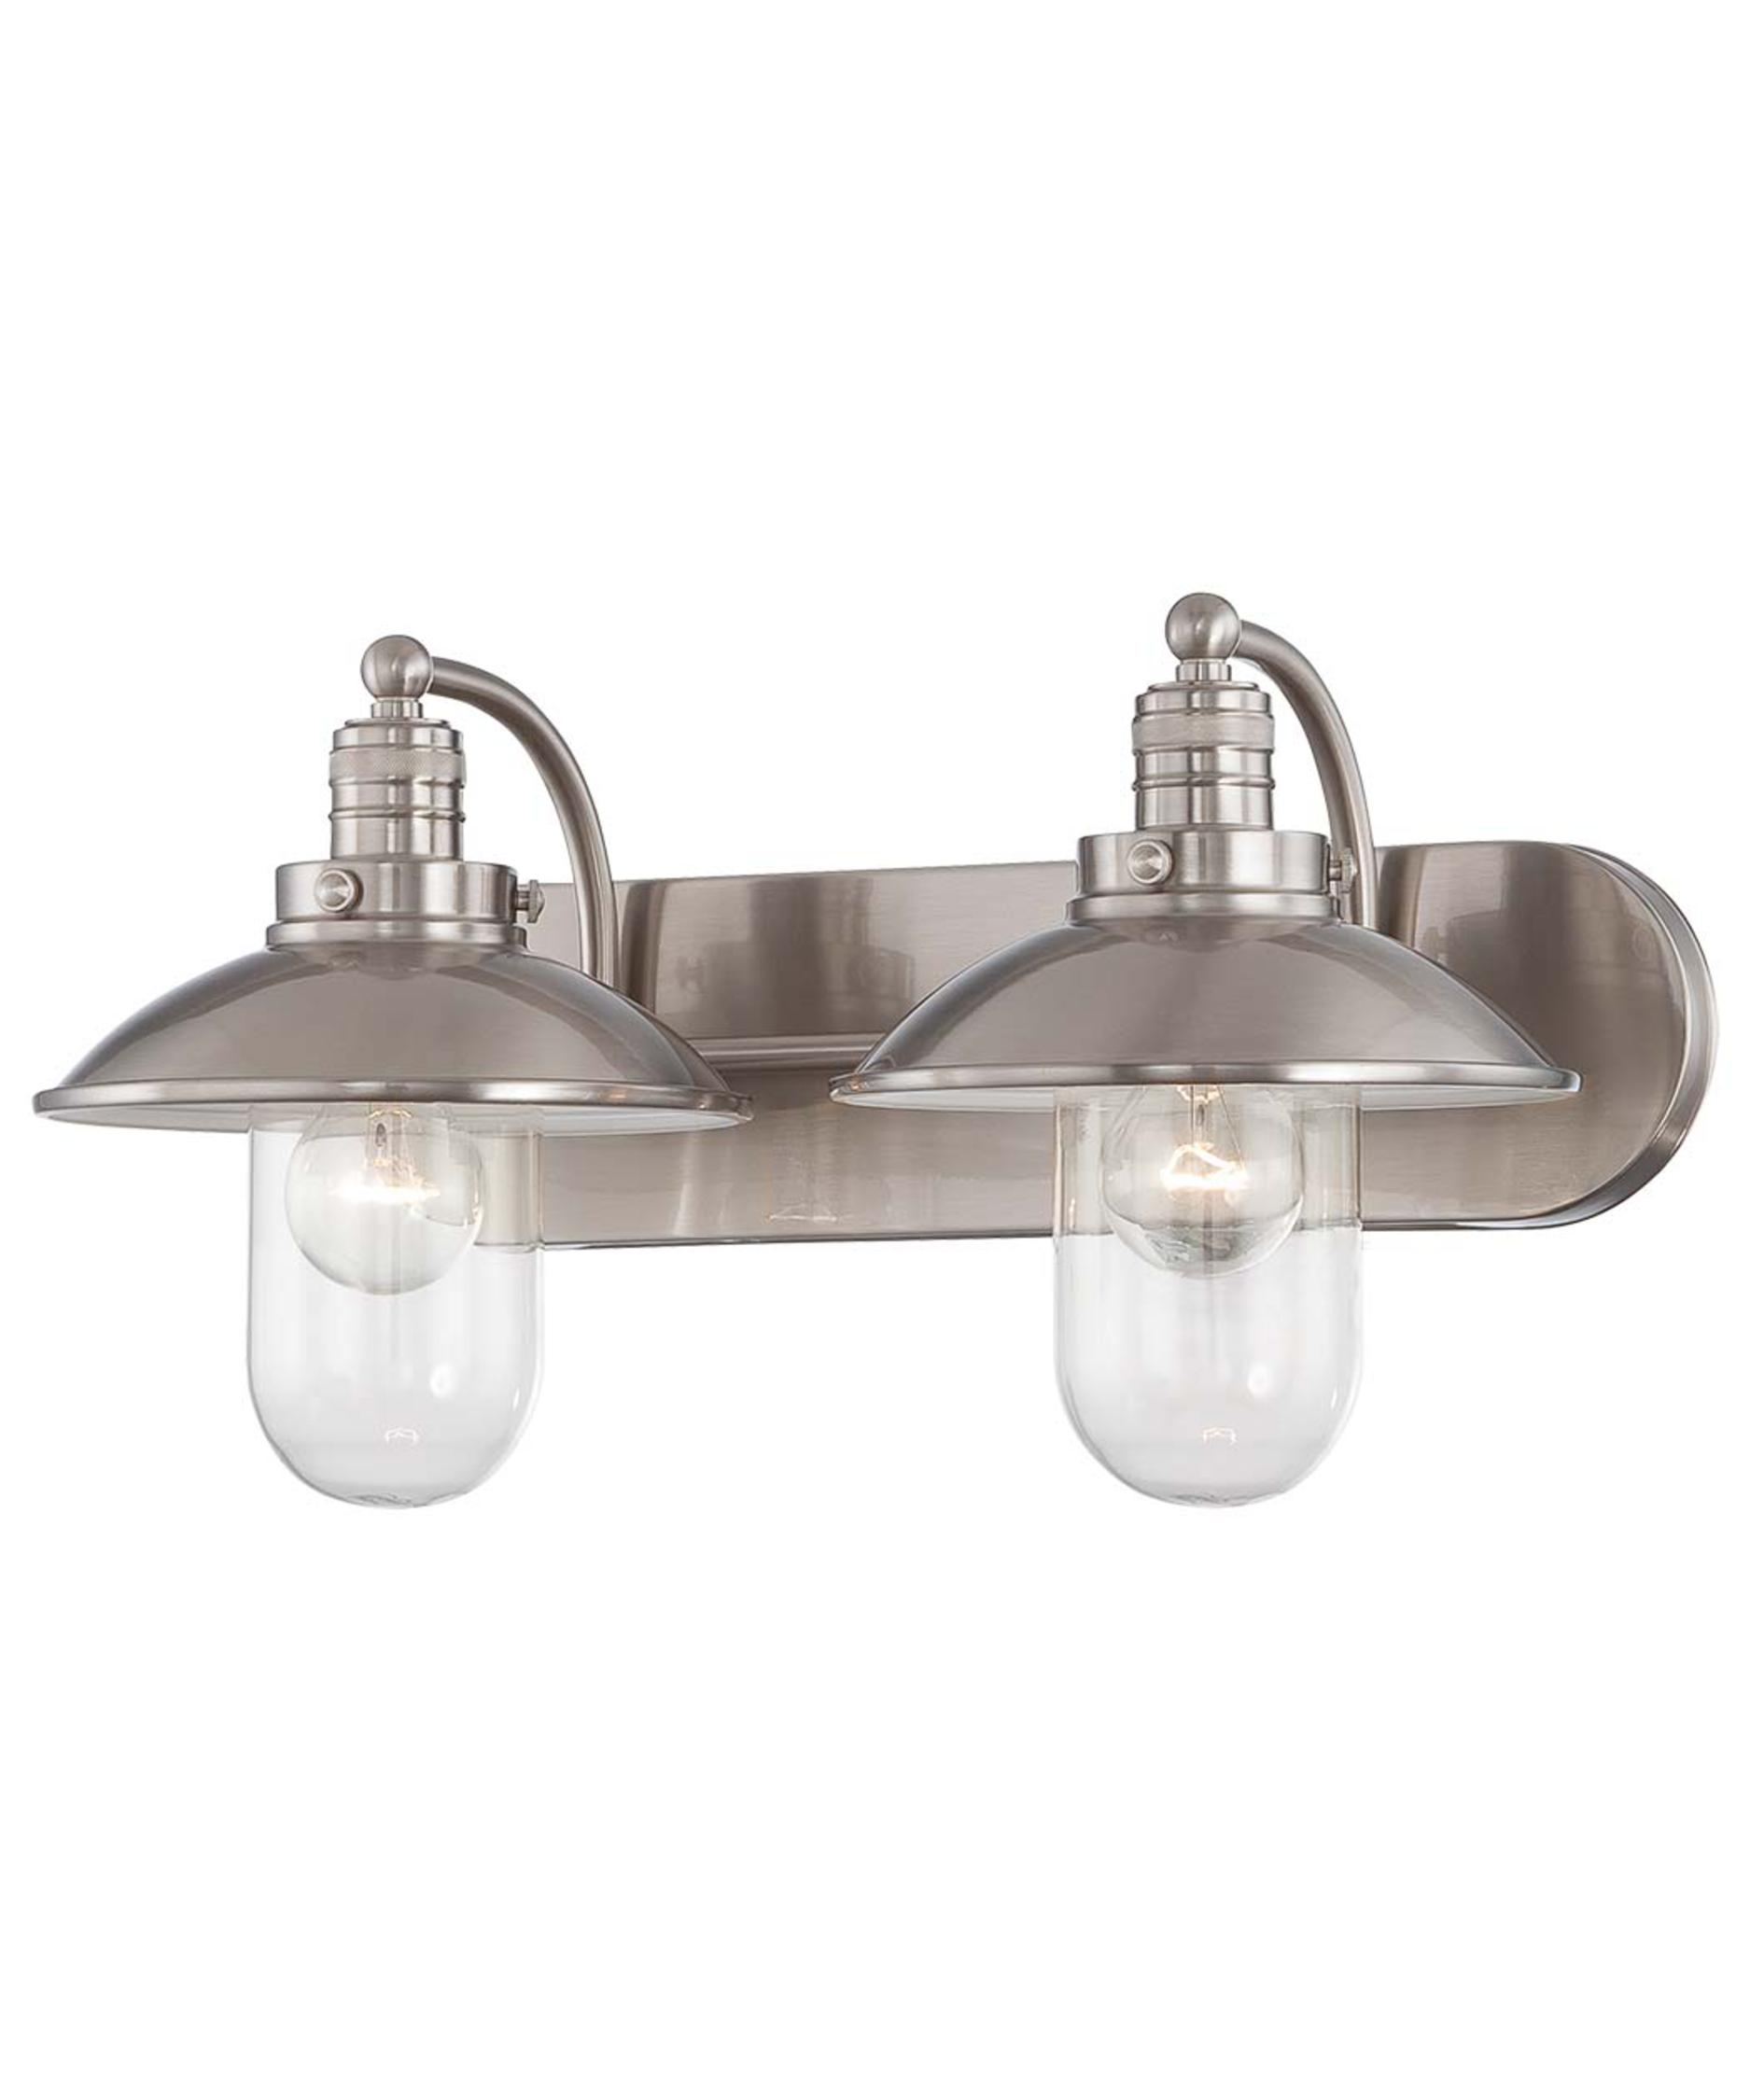 Brushed nickel bathroom lights - Shown In Brushed Nickel Finish And Clear Glass